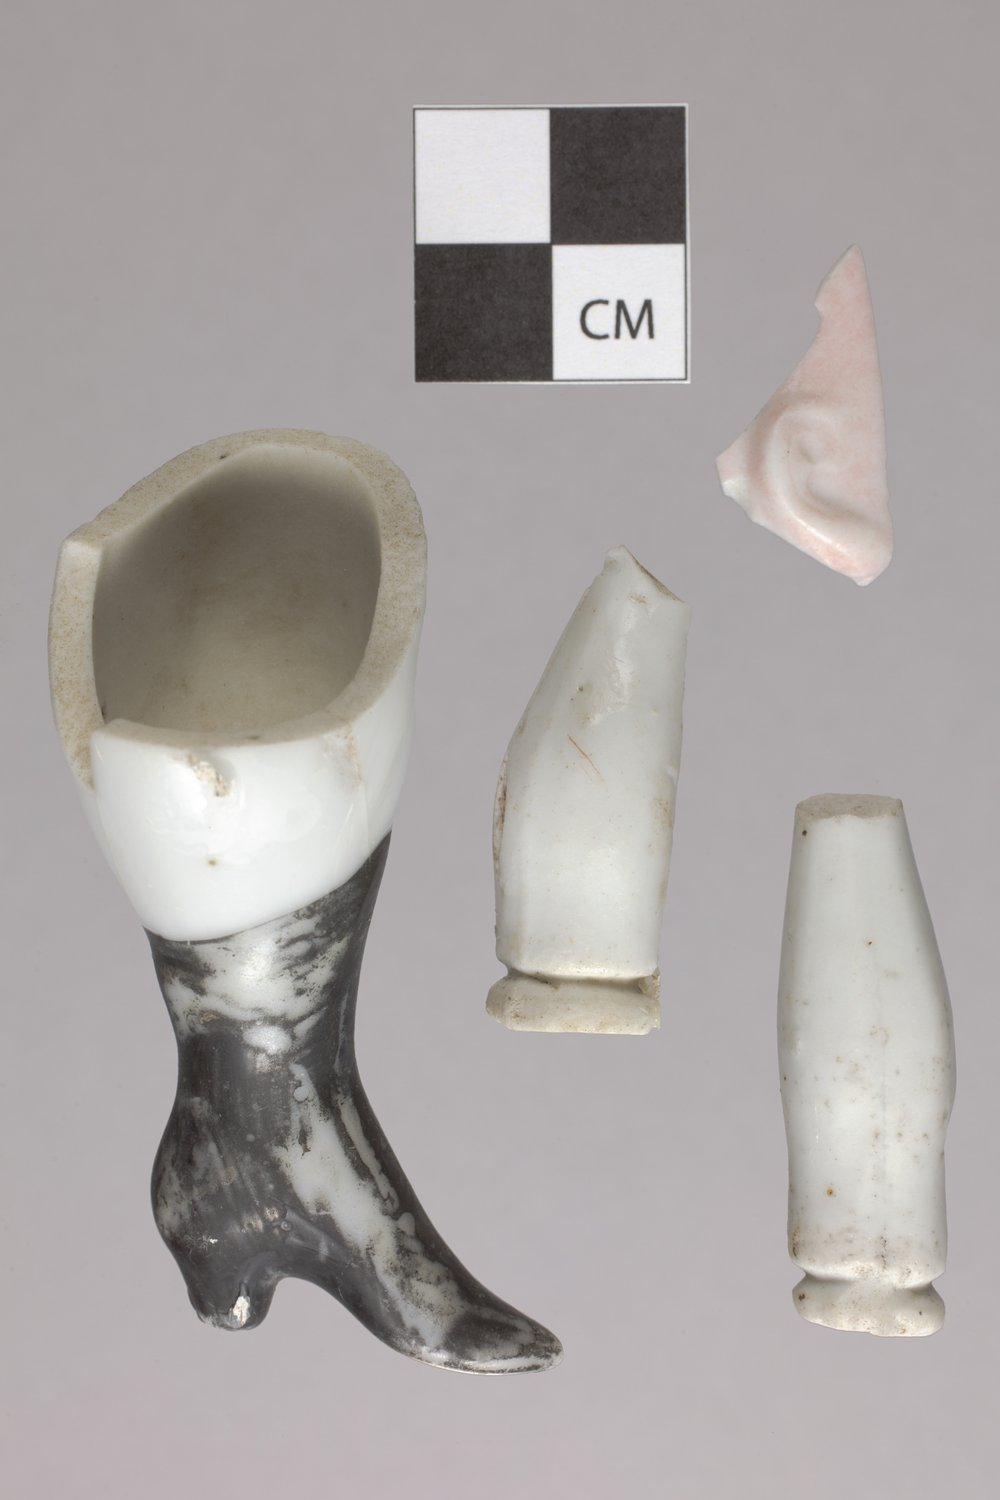 Doll Fragments from the Plowboy Site, 14SH372 - 2